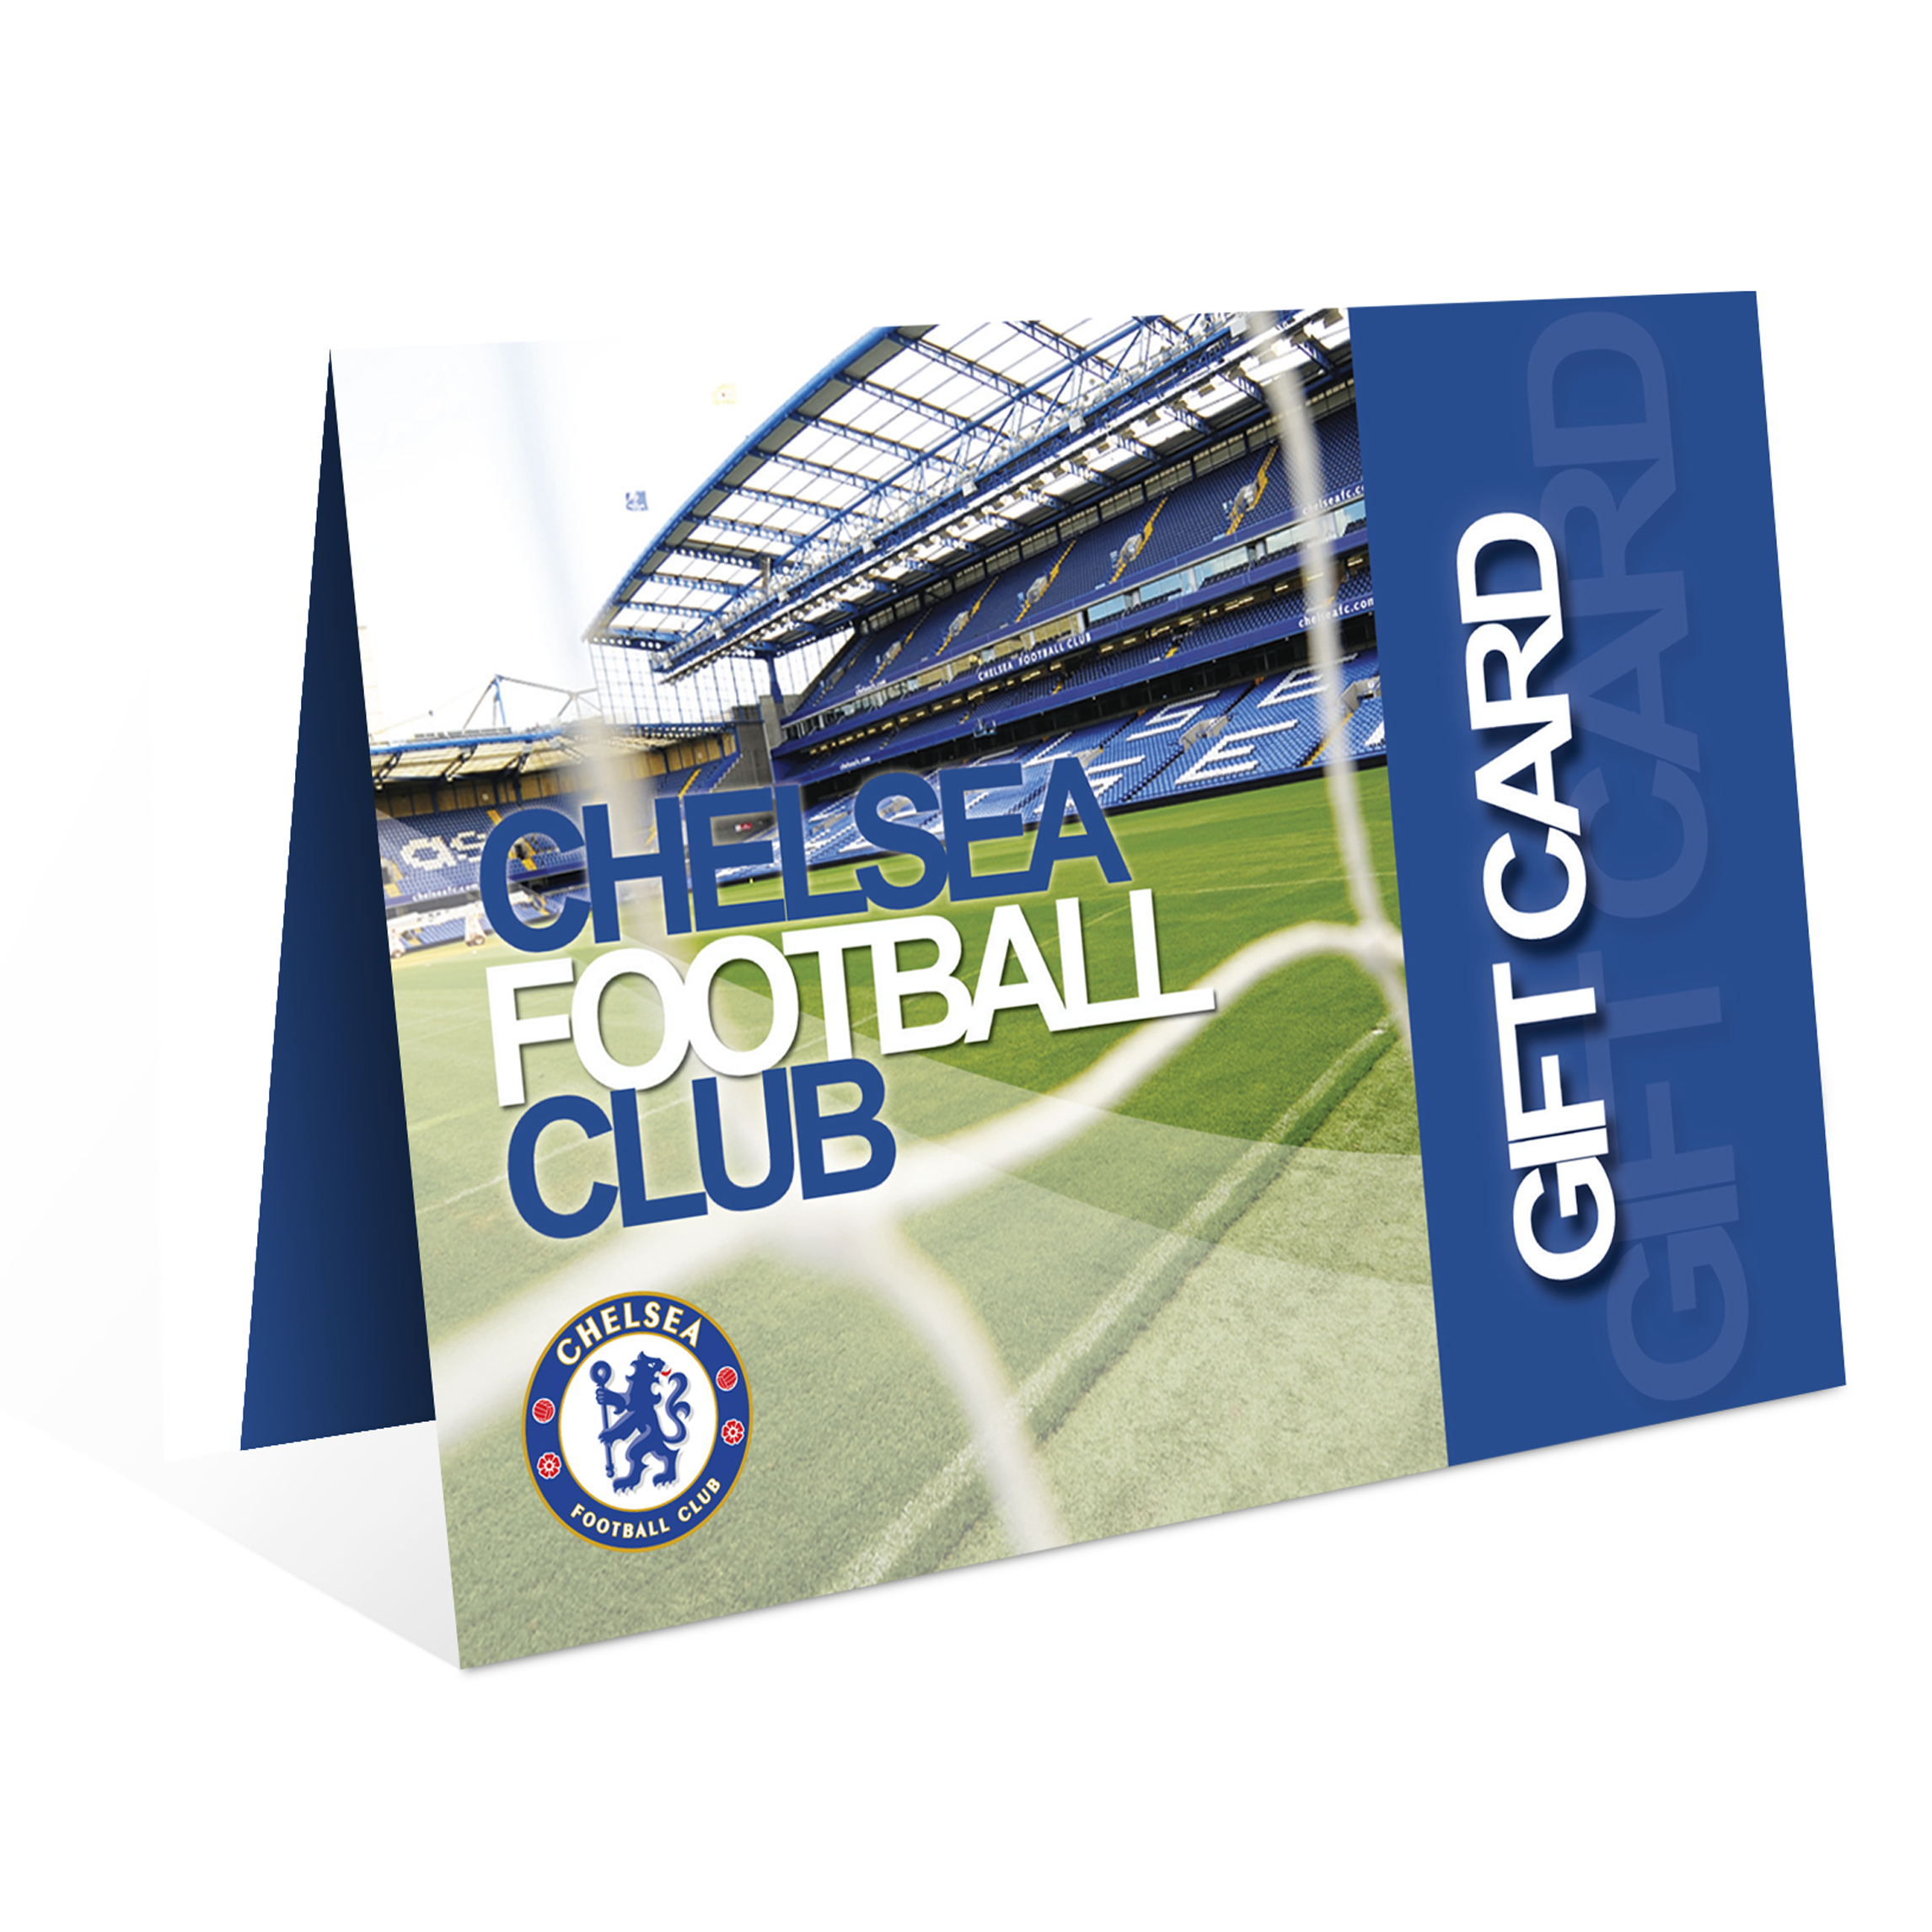 Chelsea Football Club Gift Card - Pitch - Value £50